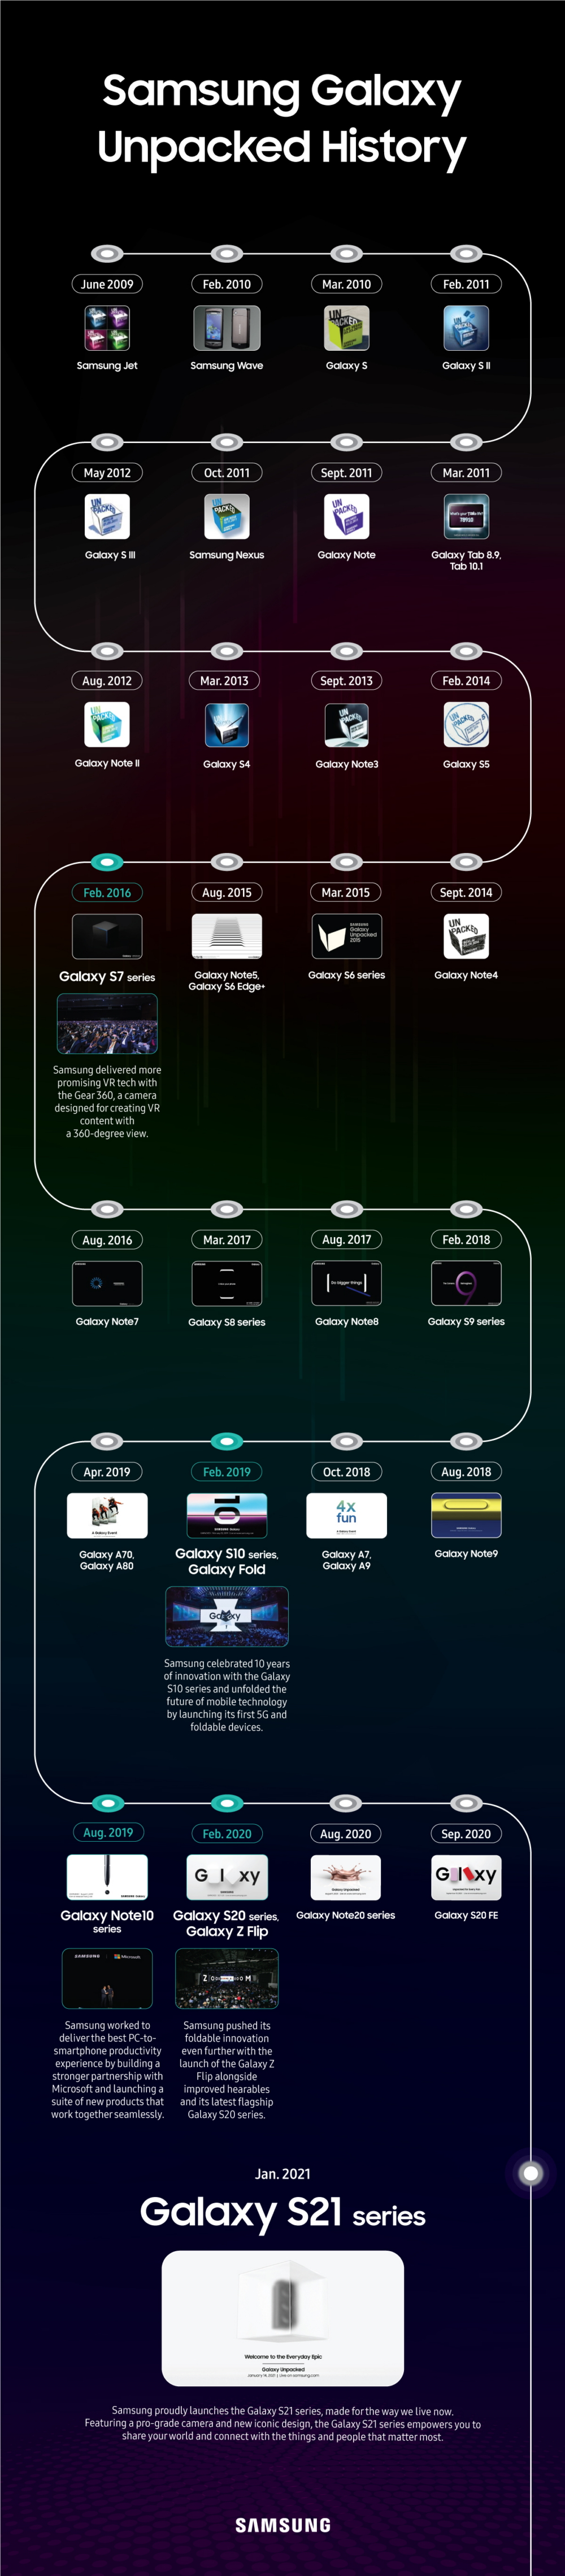 Unboxing Innovation: Looking Back at Samsung's Galaxy Unpacked Events - Image 1